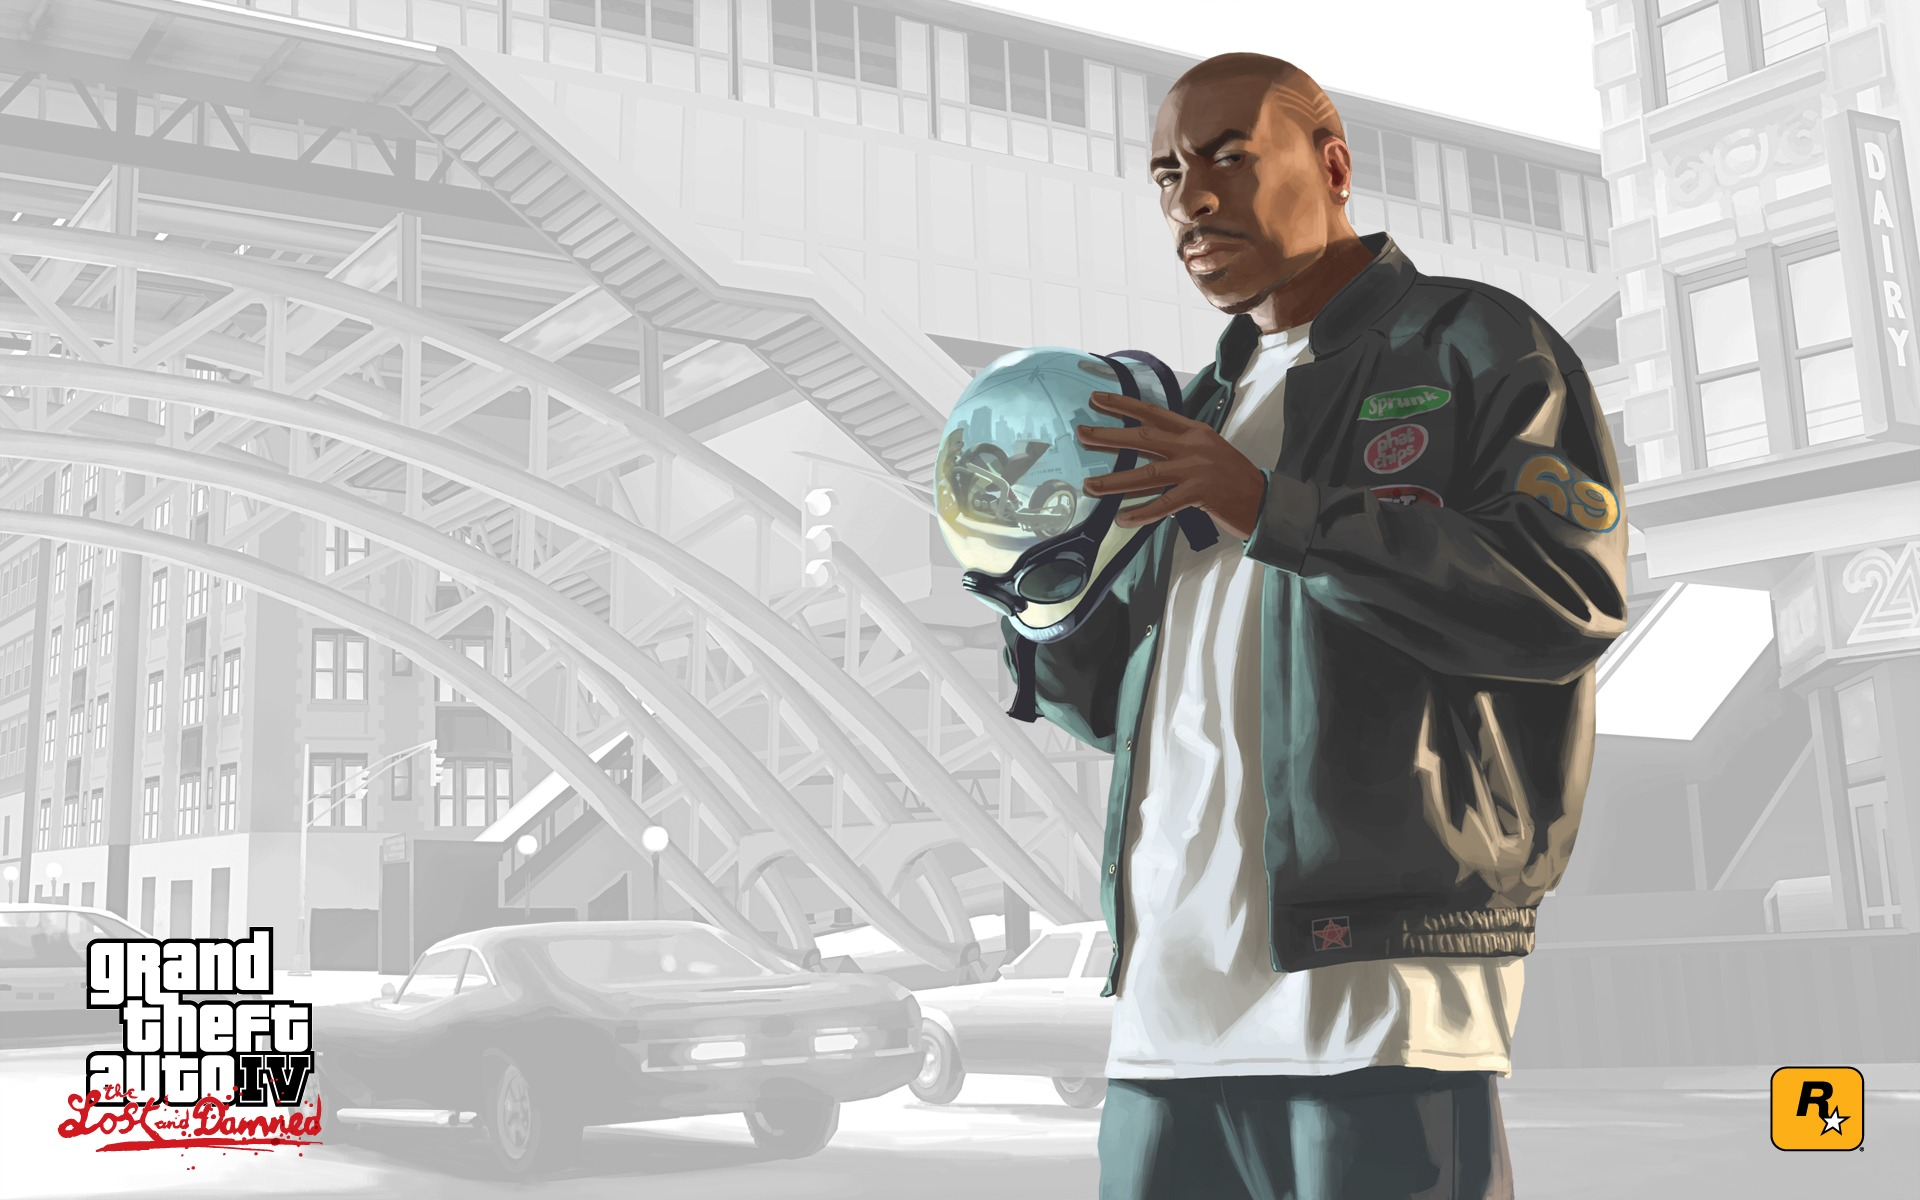 GTA The Lost And Damned Wallpaper IV Games Wallpapers